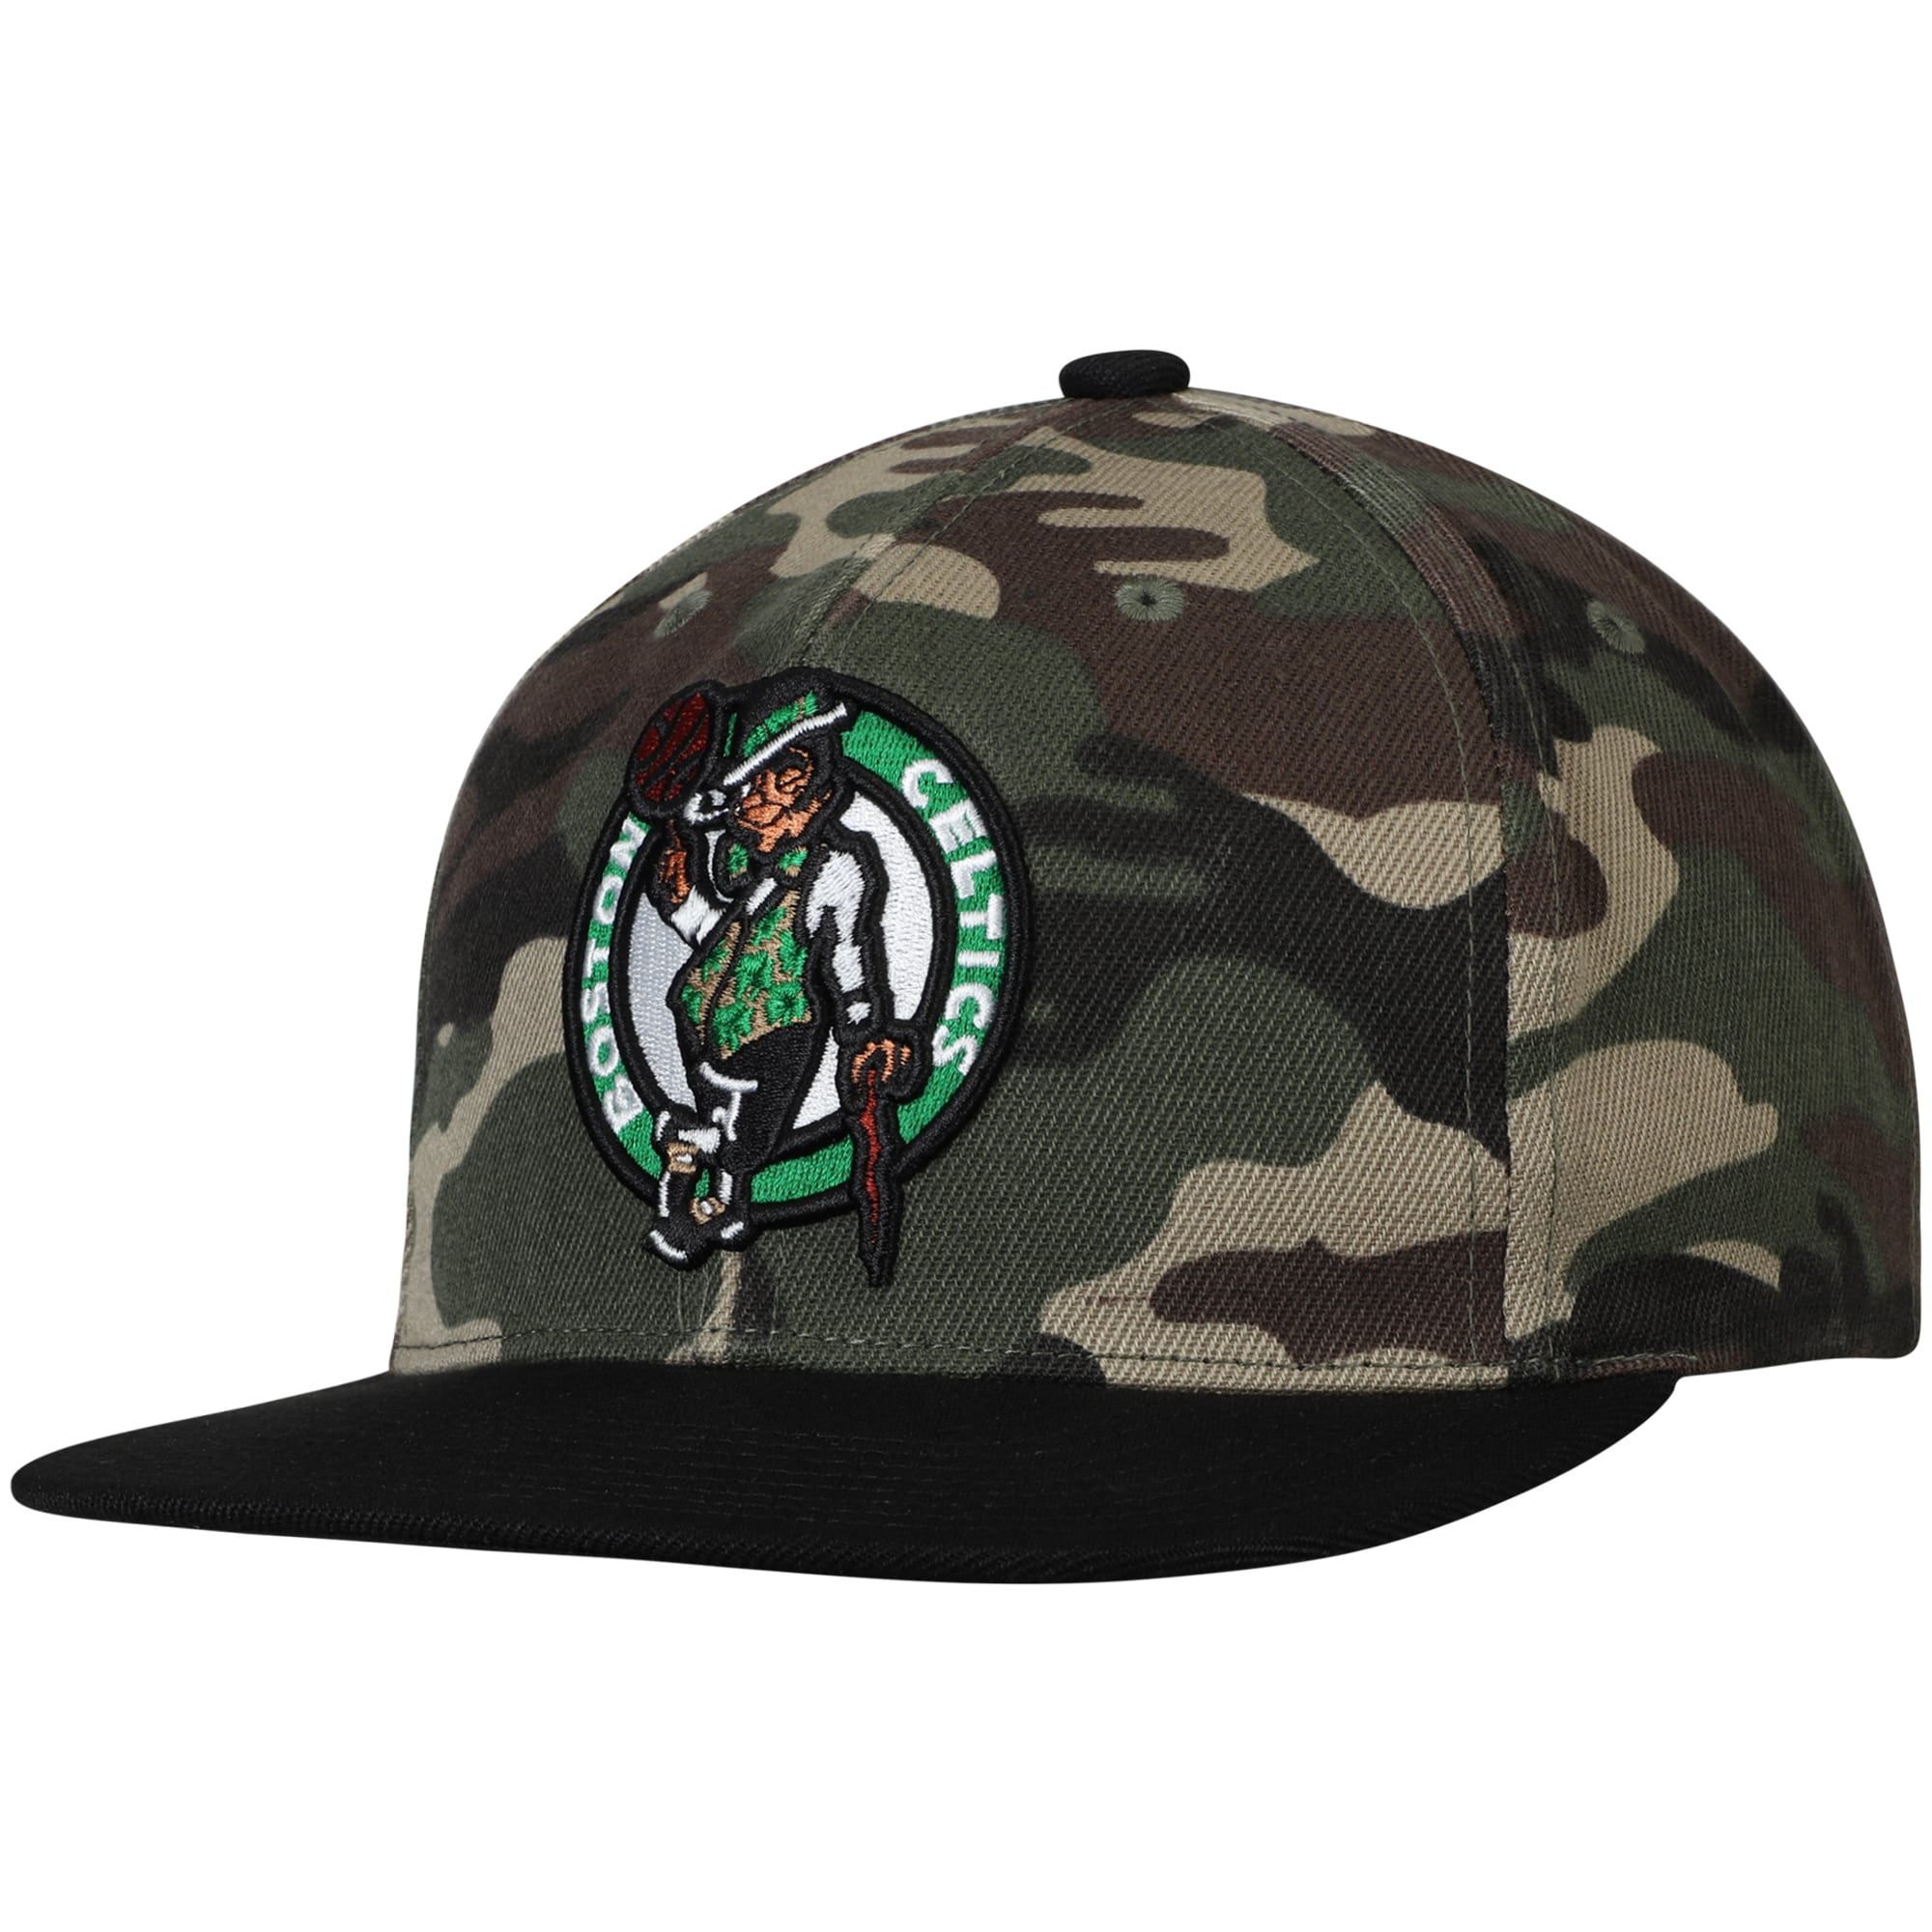 Boston Celtics Mitchell & Ness Natural Snapback Adjustable Hat - Camo